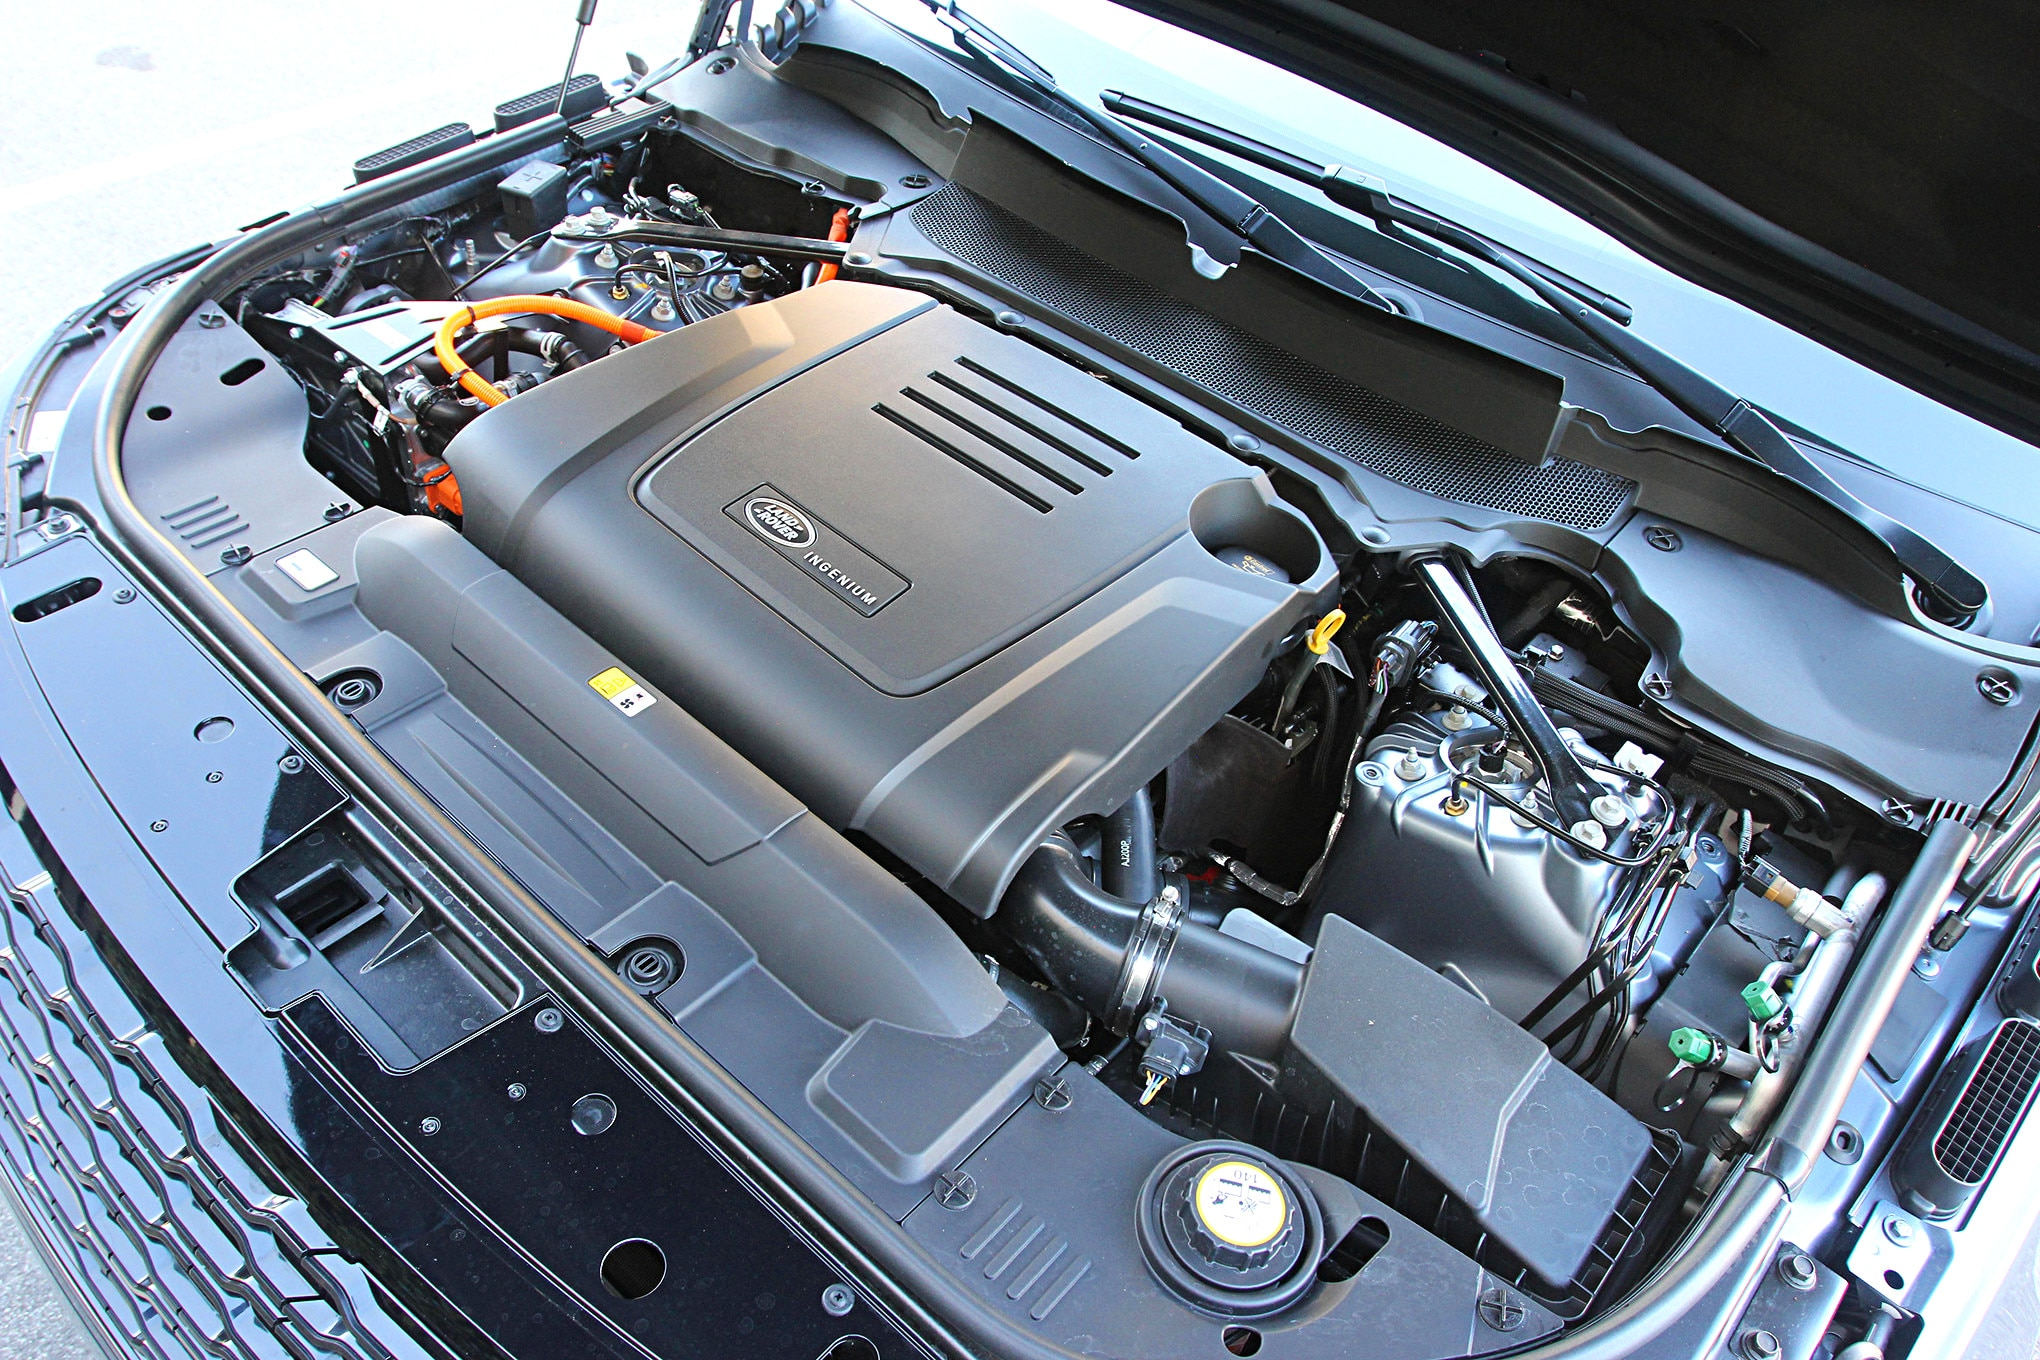 2019 suv of the year land rover range rover HSE P400e engine.JPG